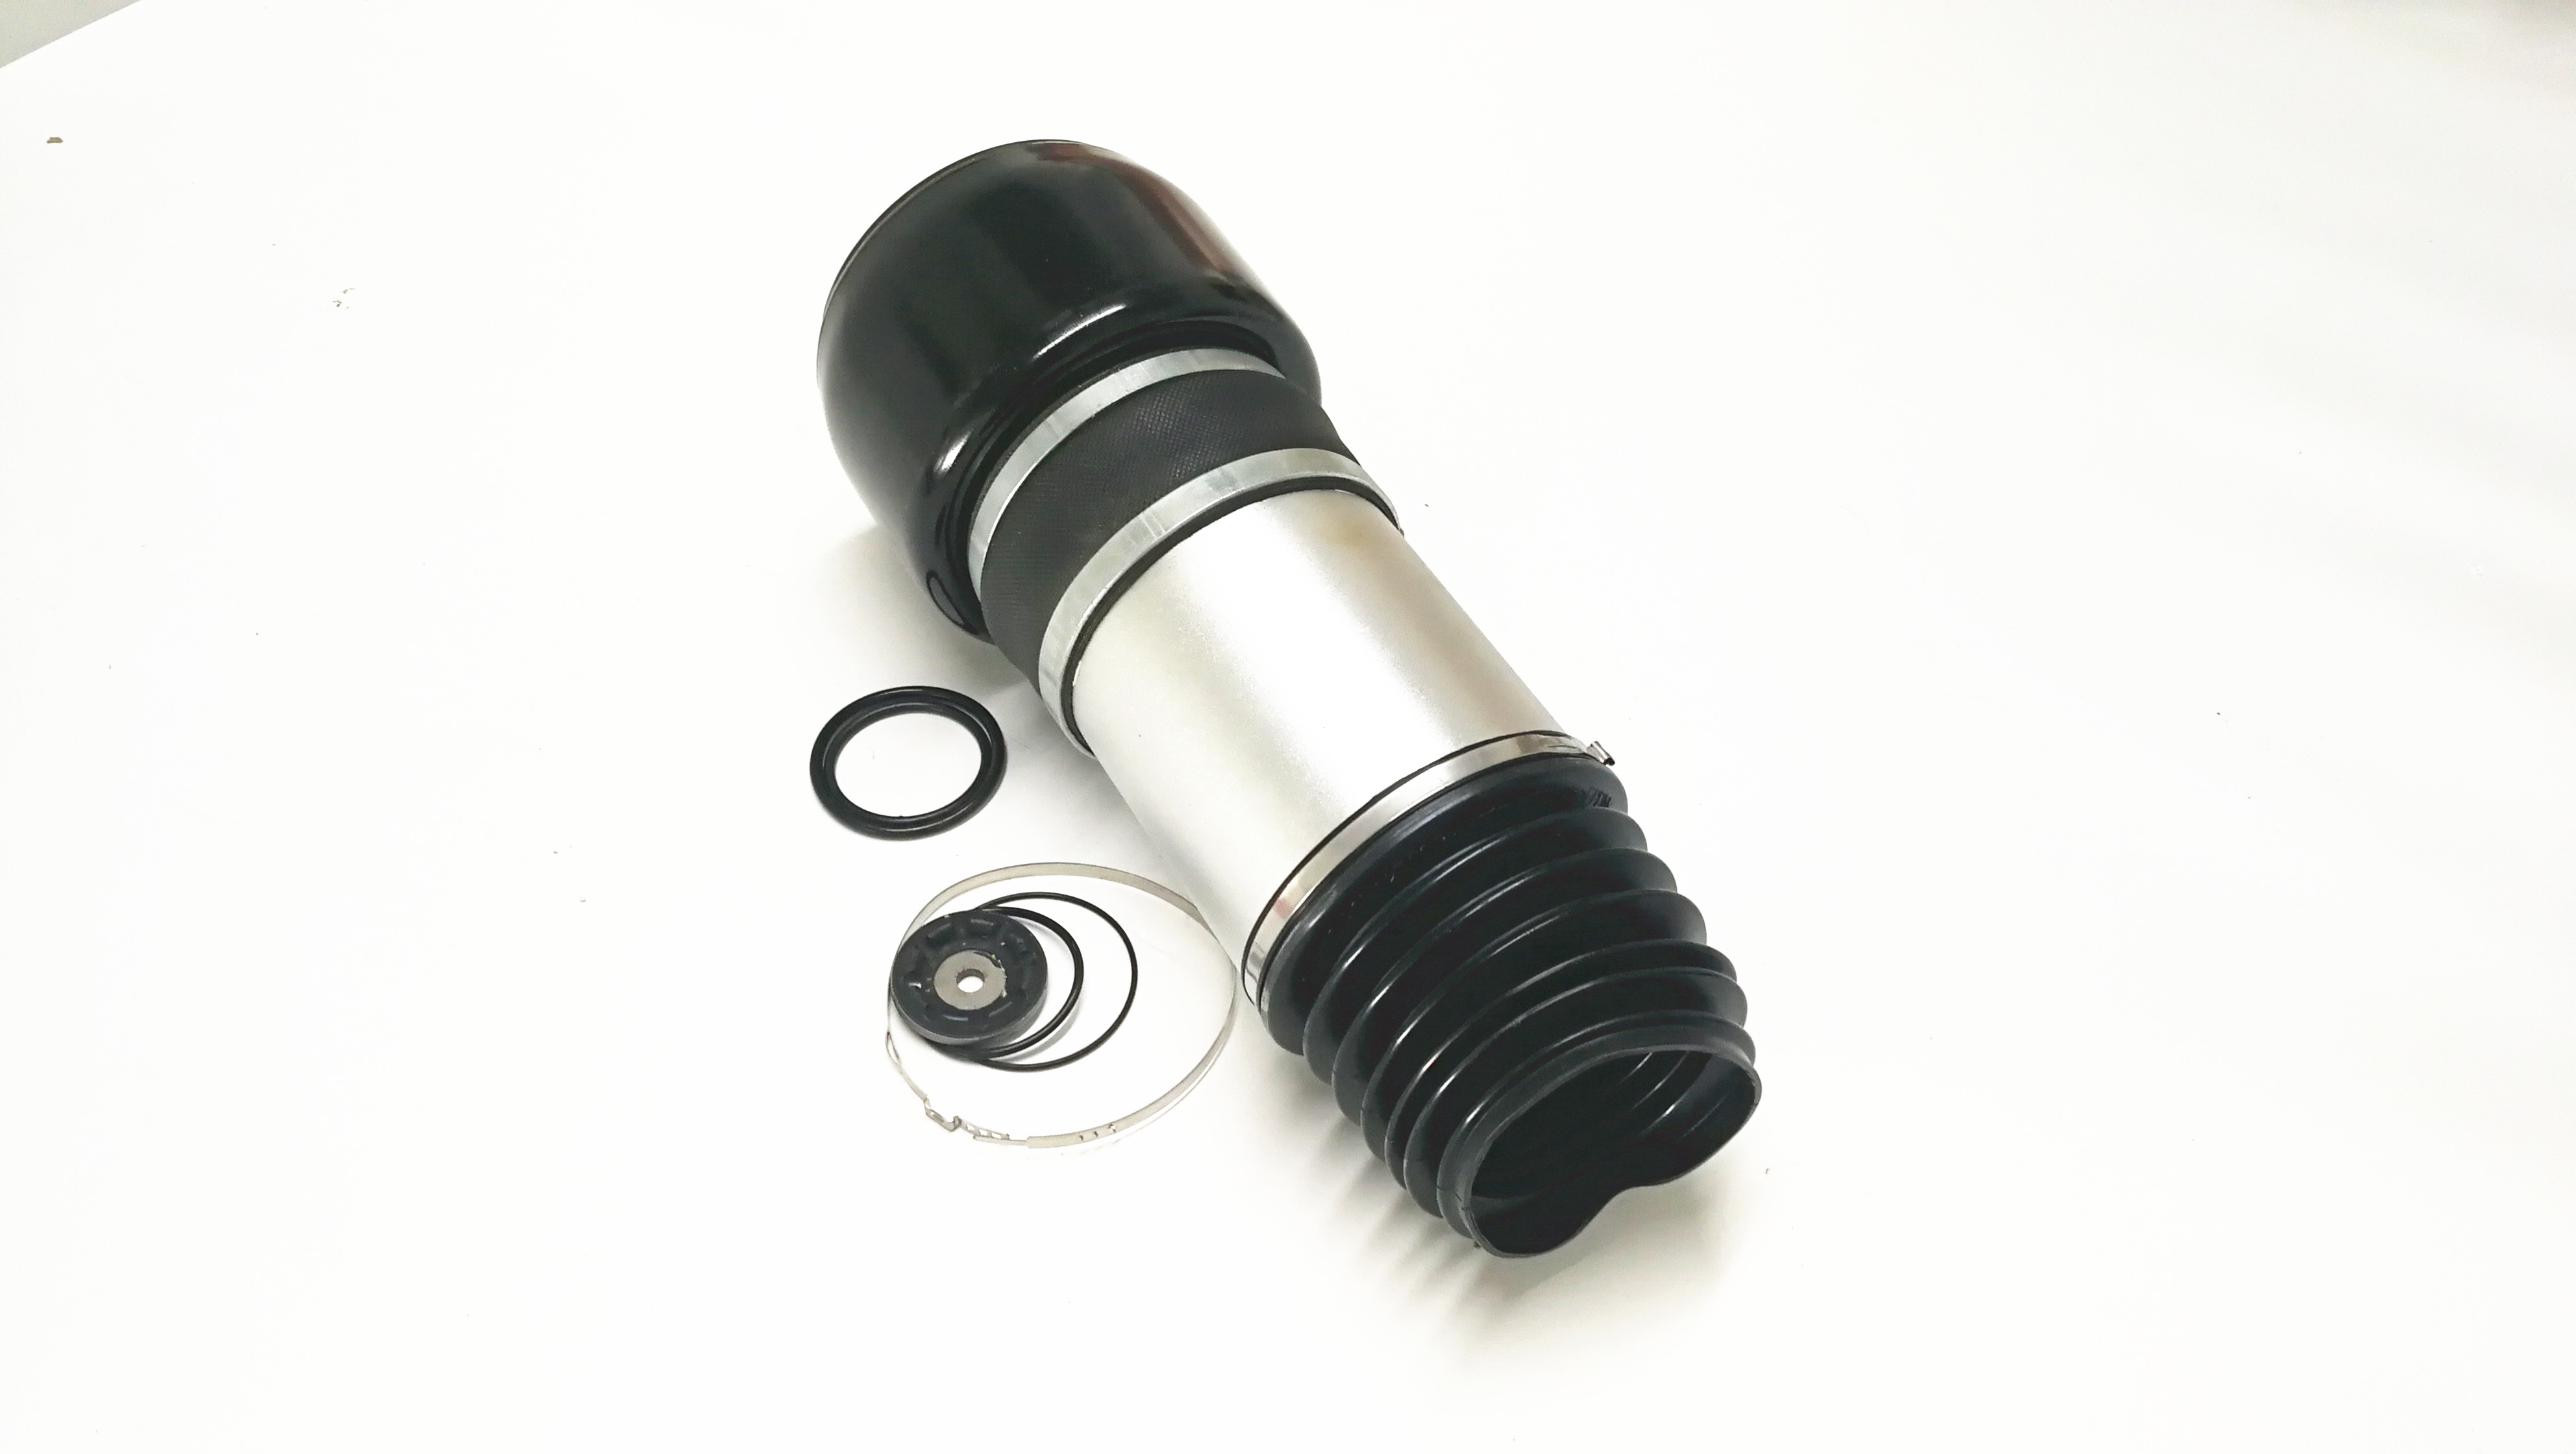 Free shipping 1 Pcs Air suspension Strut for Mercedes W211 4Matic E Class 2002 2009 Front left right in Shock Absorber Parts from Automobiles Motorcycles